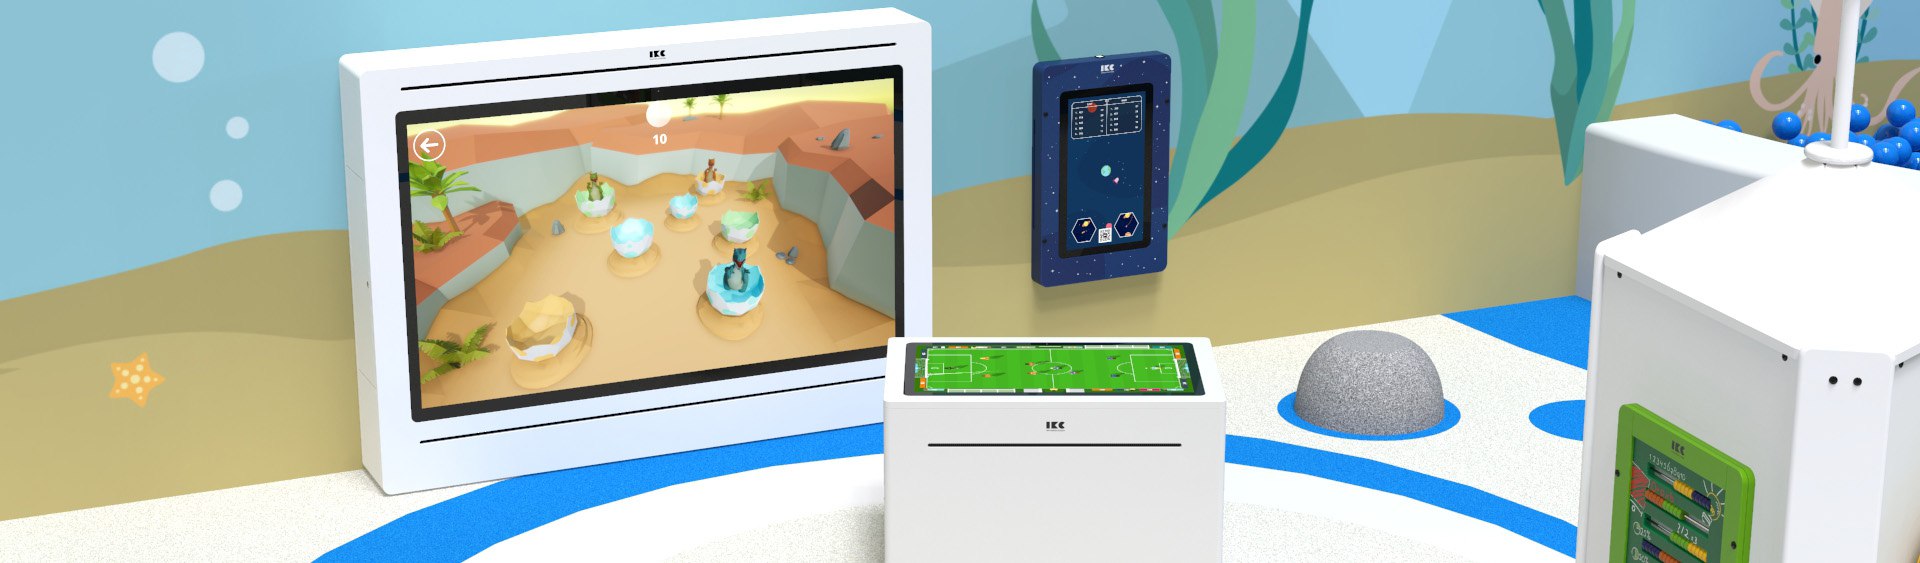 On this image you can see a kids' corner with IKC software